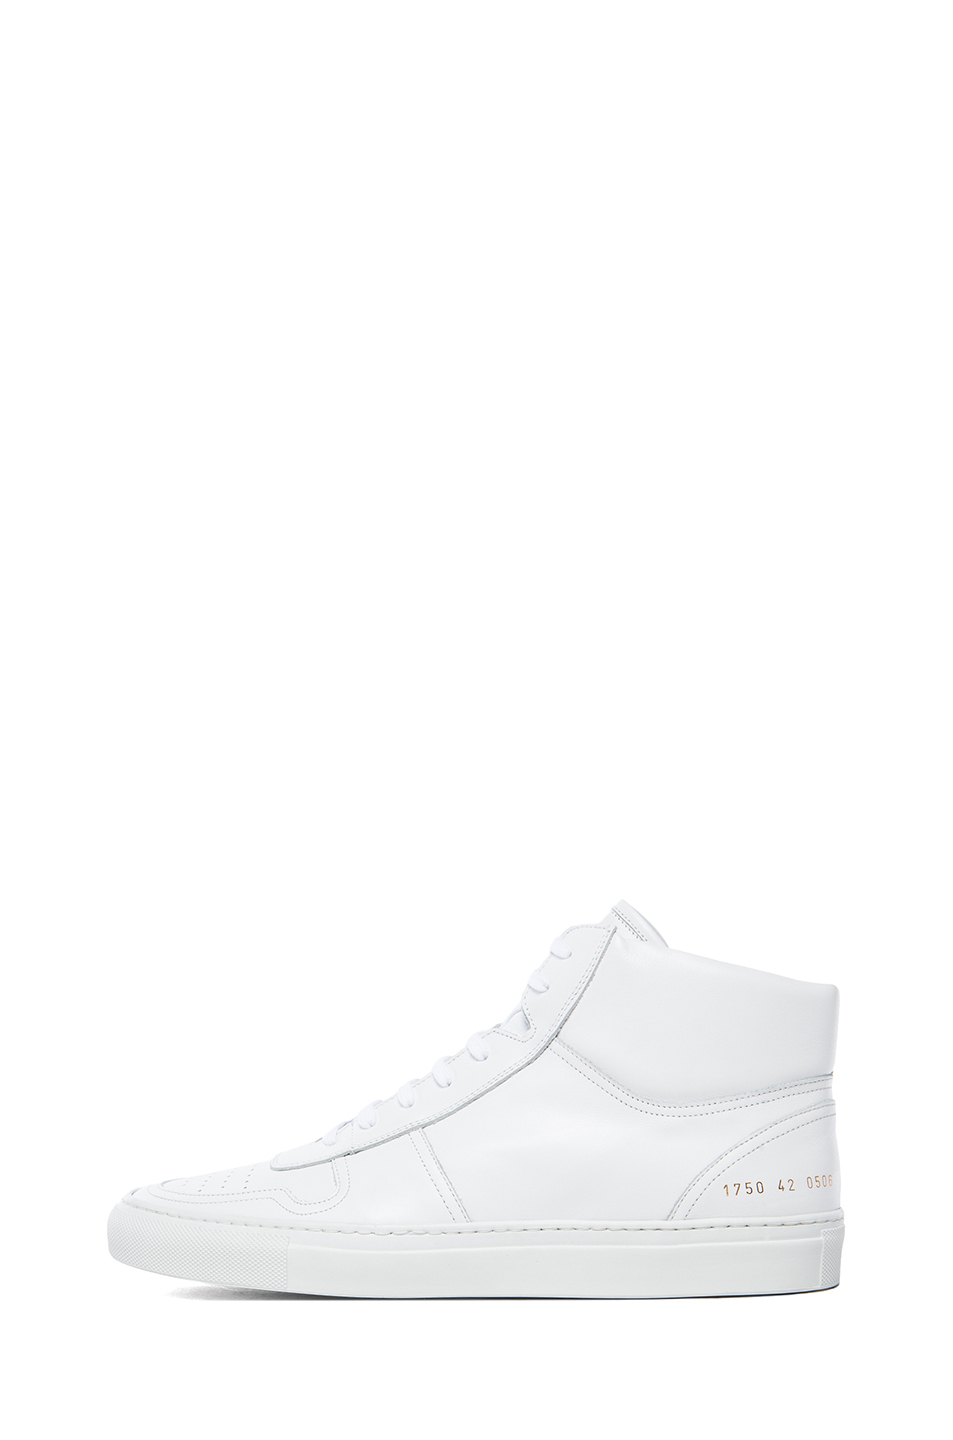 common projects high basketball leather sneakers in white lyst. Black Bedroom Furniture Sets. Home Design Ideas